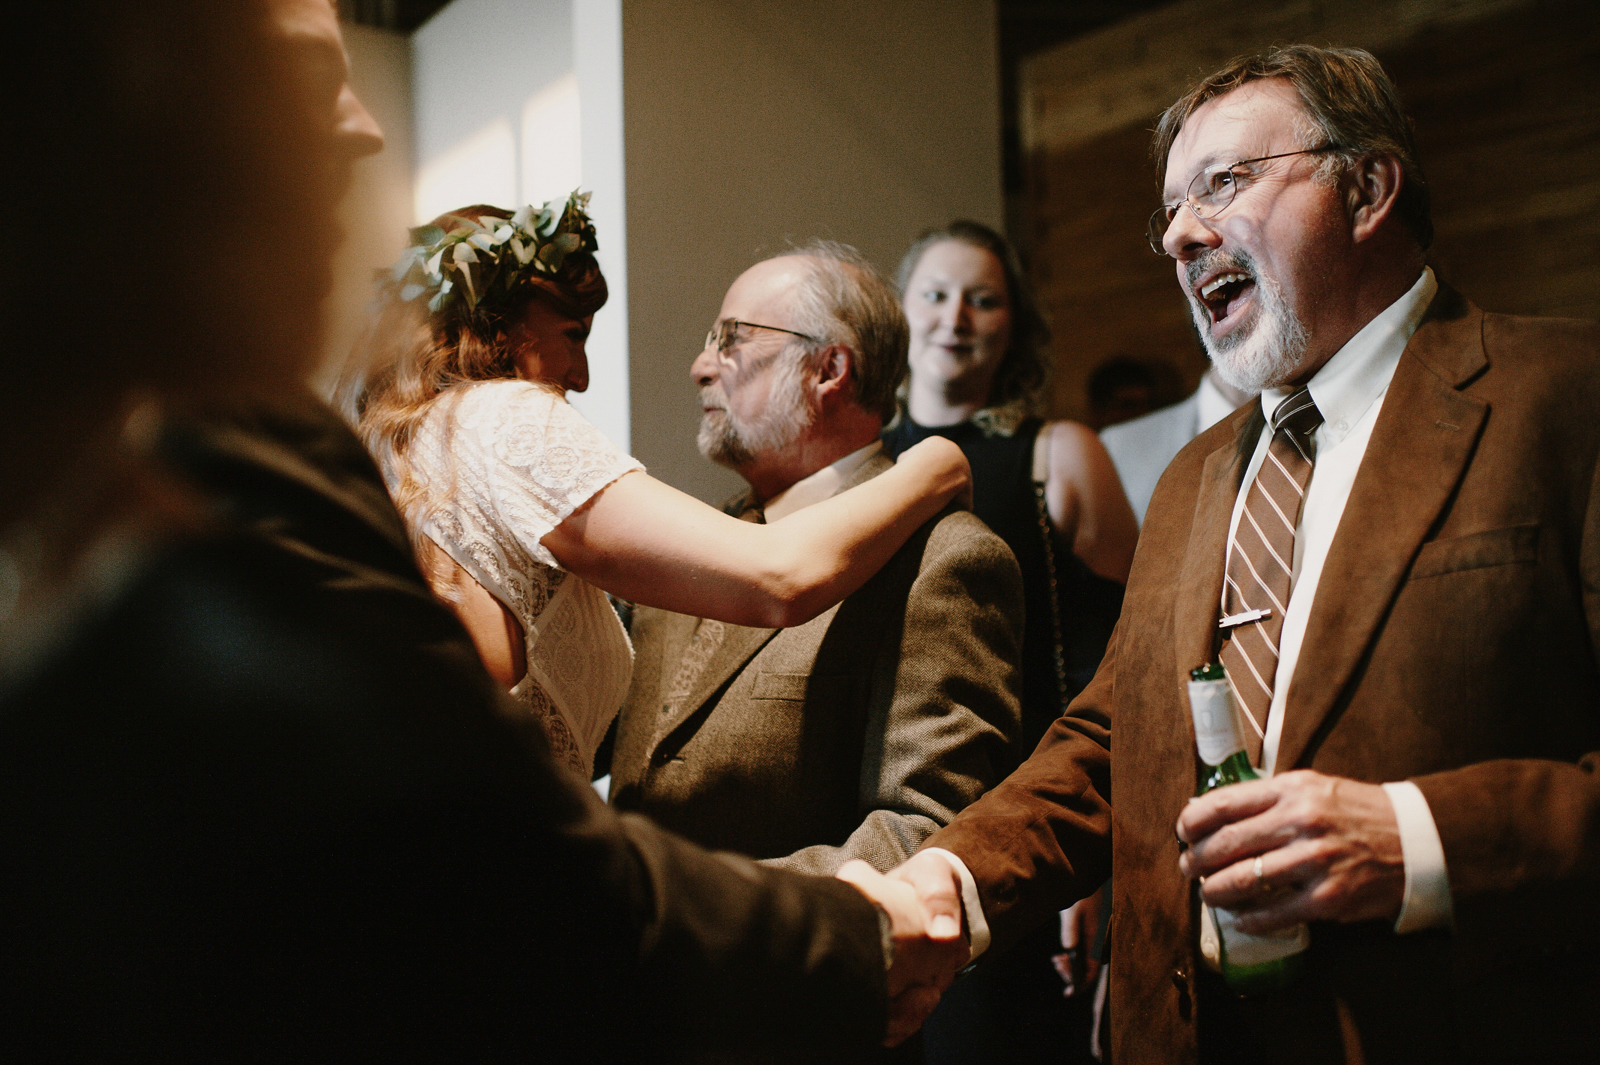 Downtown_Seattle_Wedding_Foundry_Sinclair_Moore089.JPG